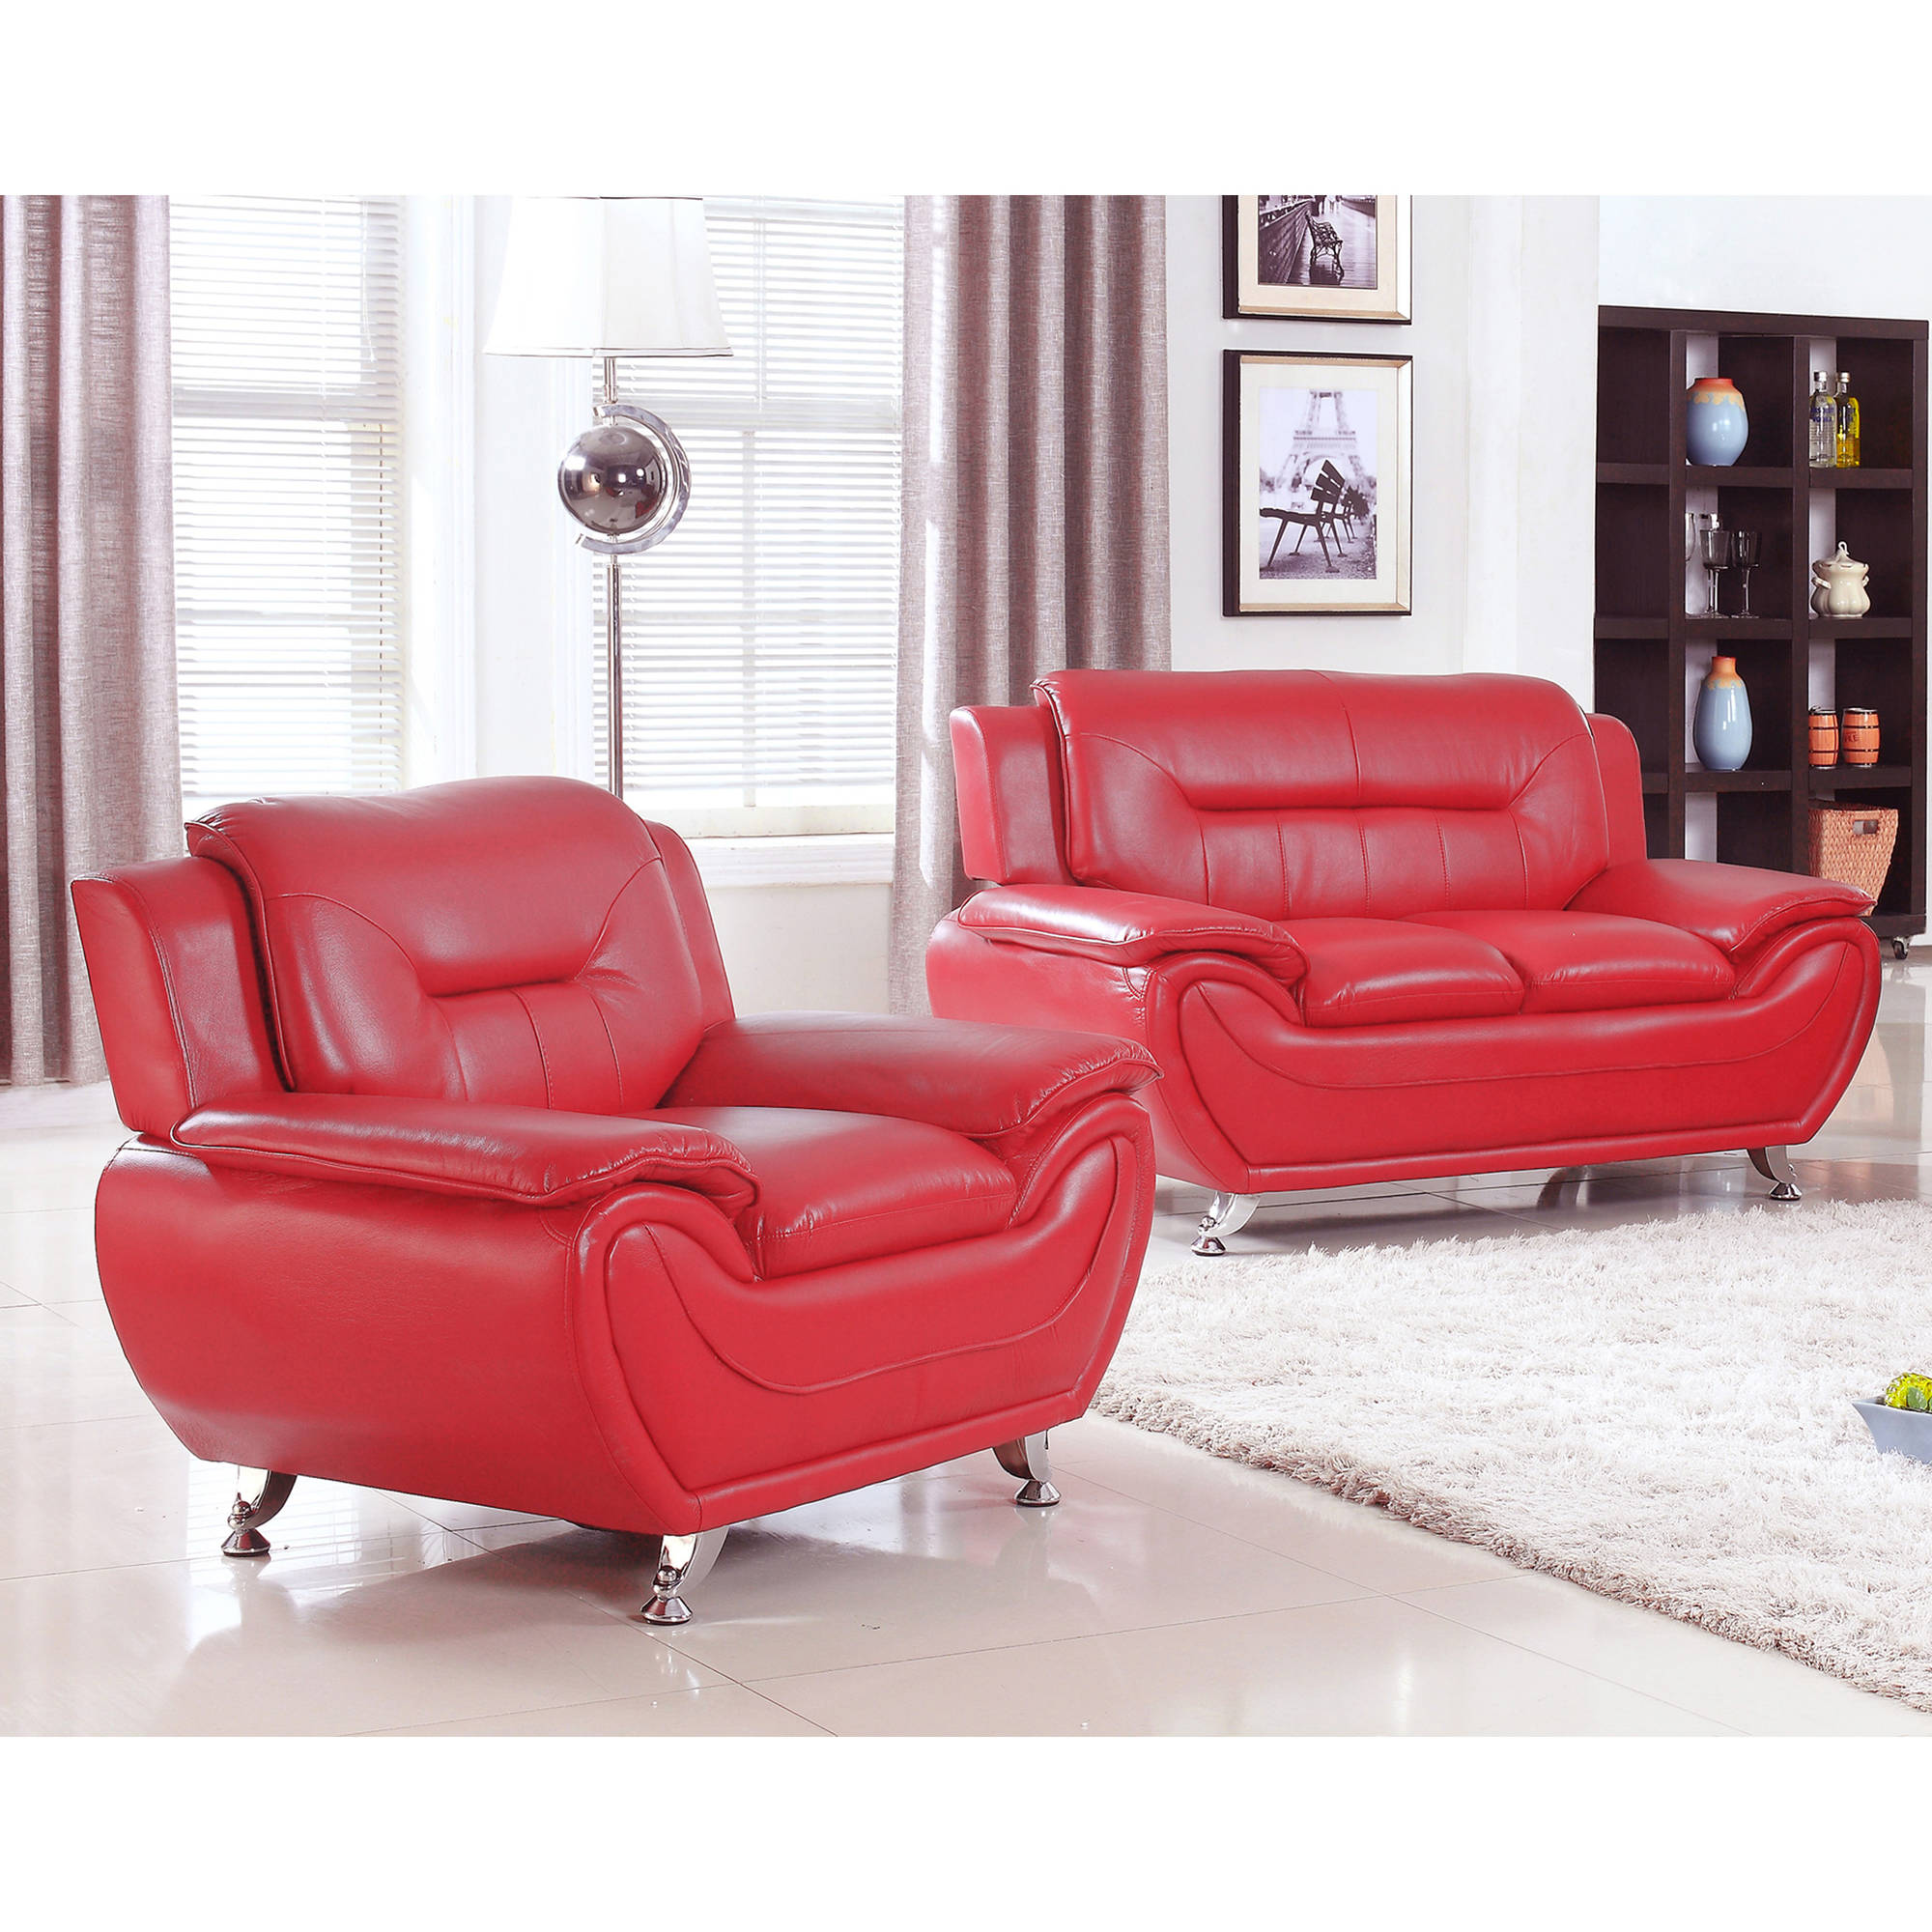 UFE Norton Red Faux Leather 2-Piece Modern Living Room Loveseat and Chair Set